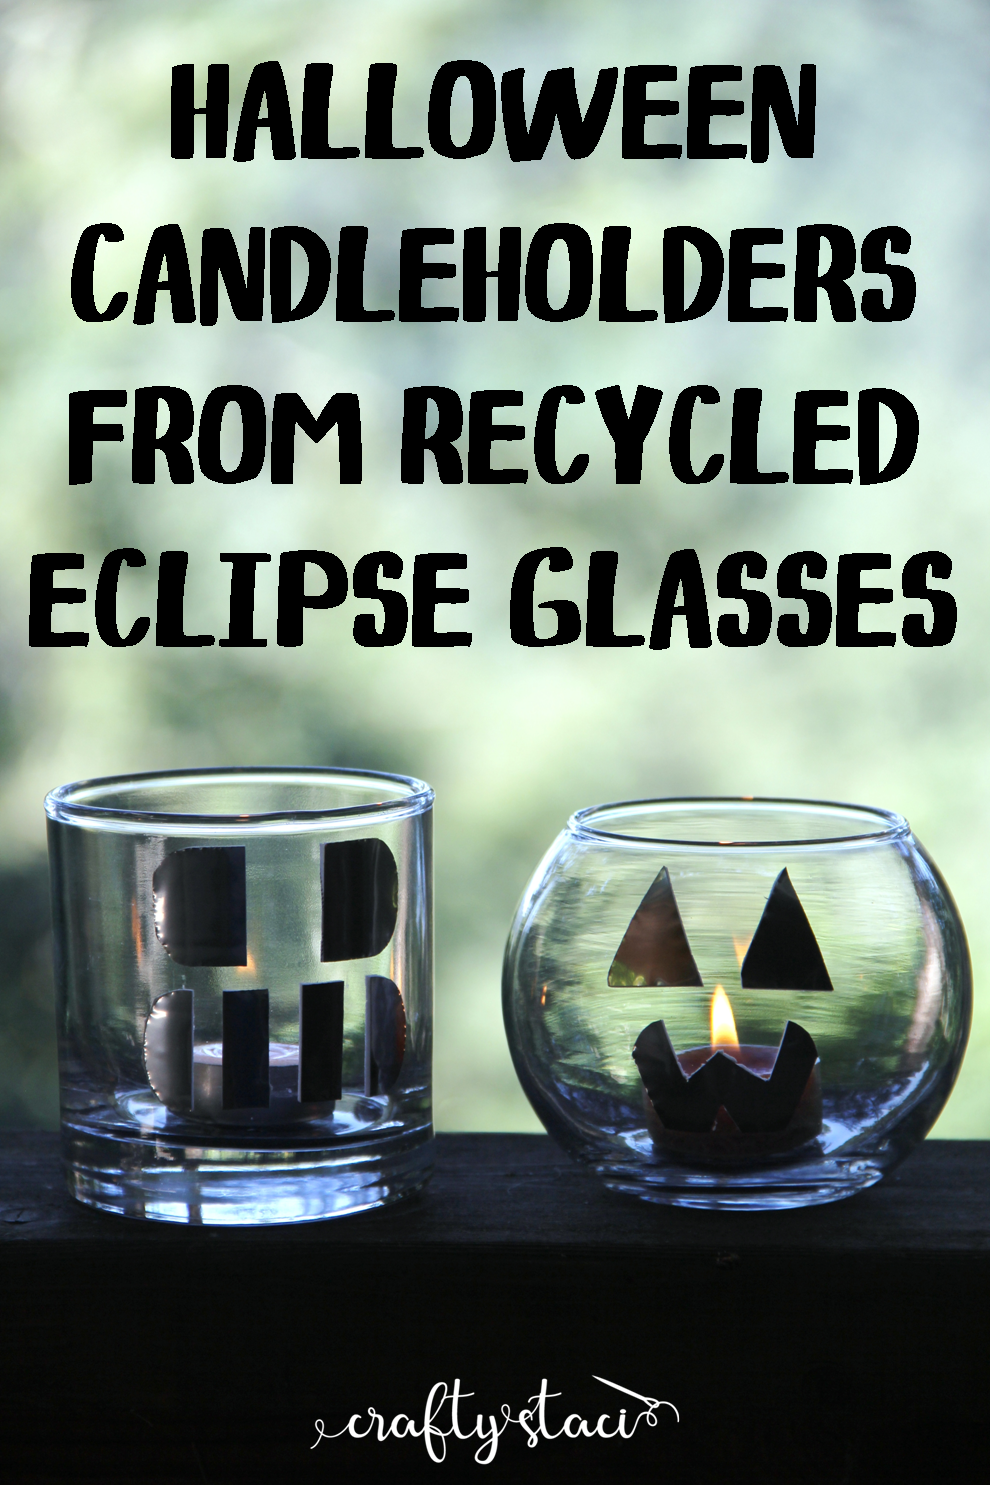 Halloween Candleholders from Recycled Eclipse Glasses.png